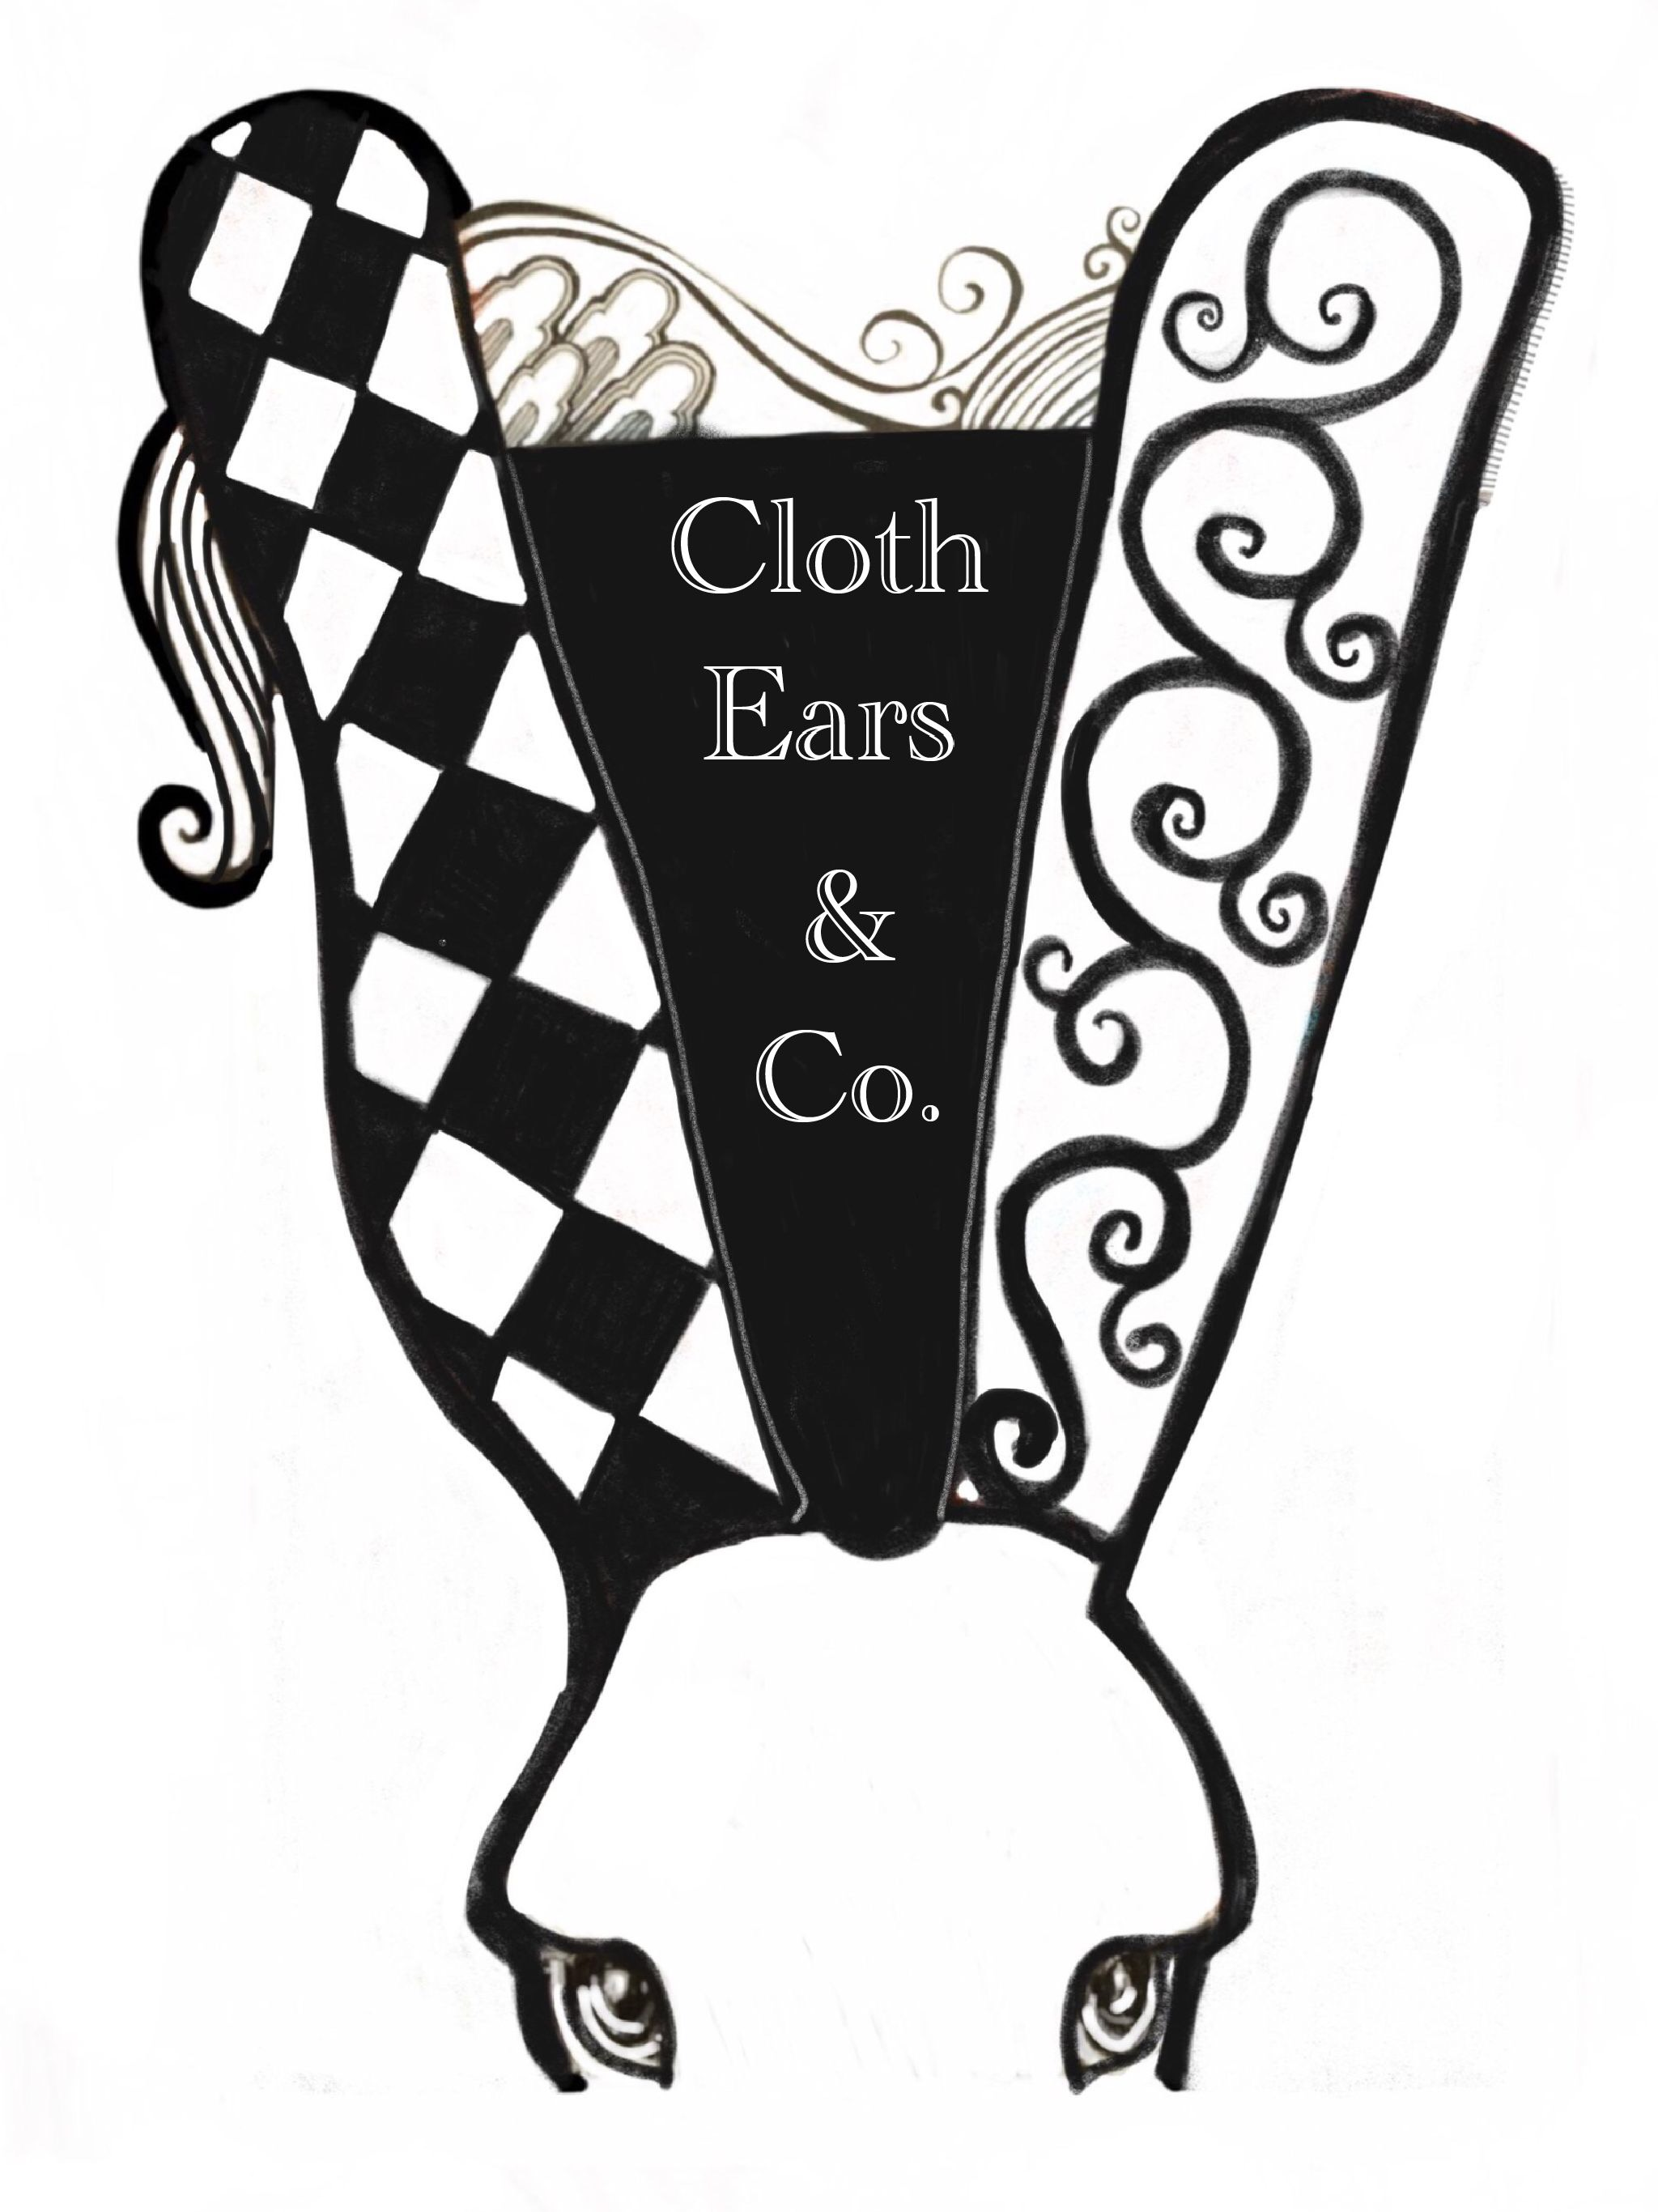 Cloth Ears & Co.